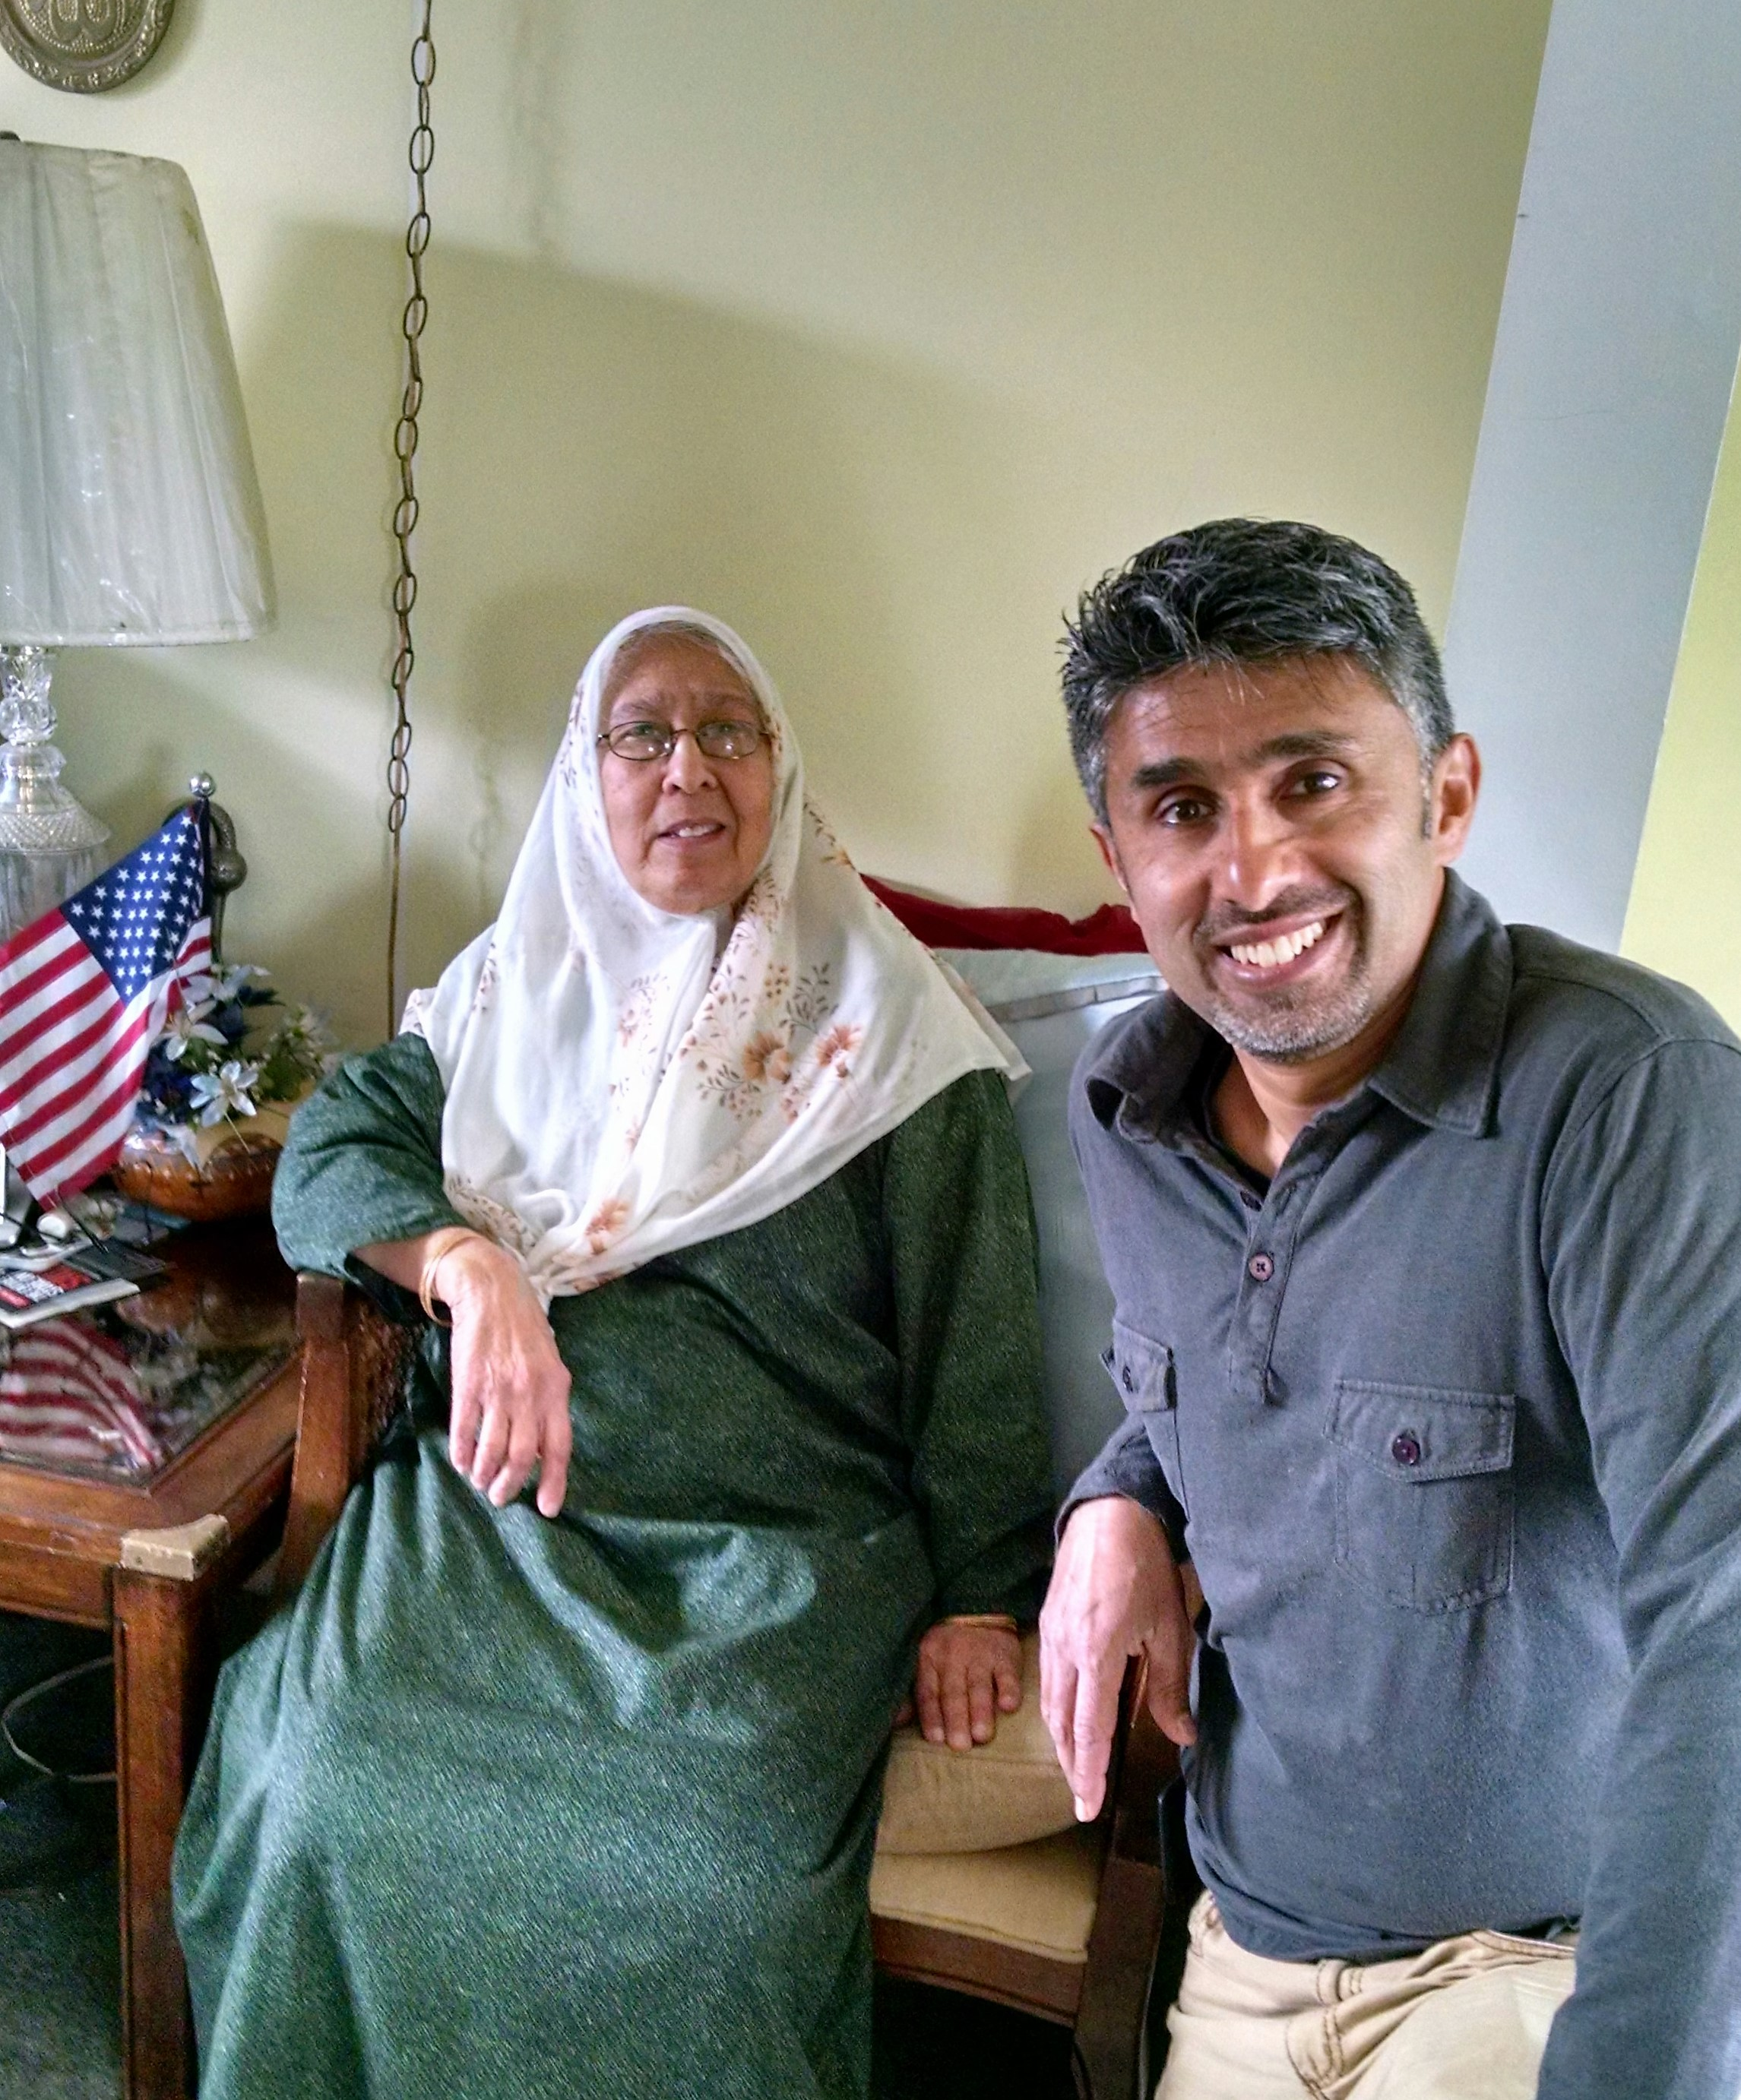 Caption: Saber and Muzzamil at Saber's home. She bought a few American flags after 9/11 and put them around  her house, Credit: Renee Gross